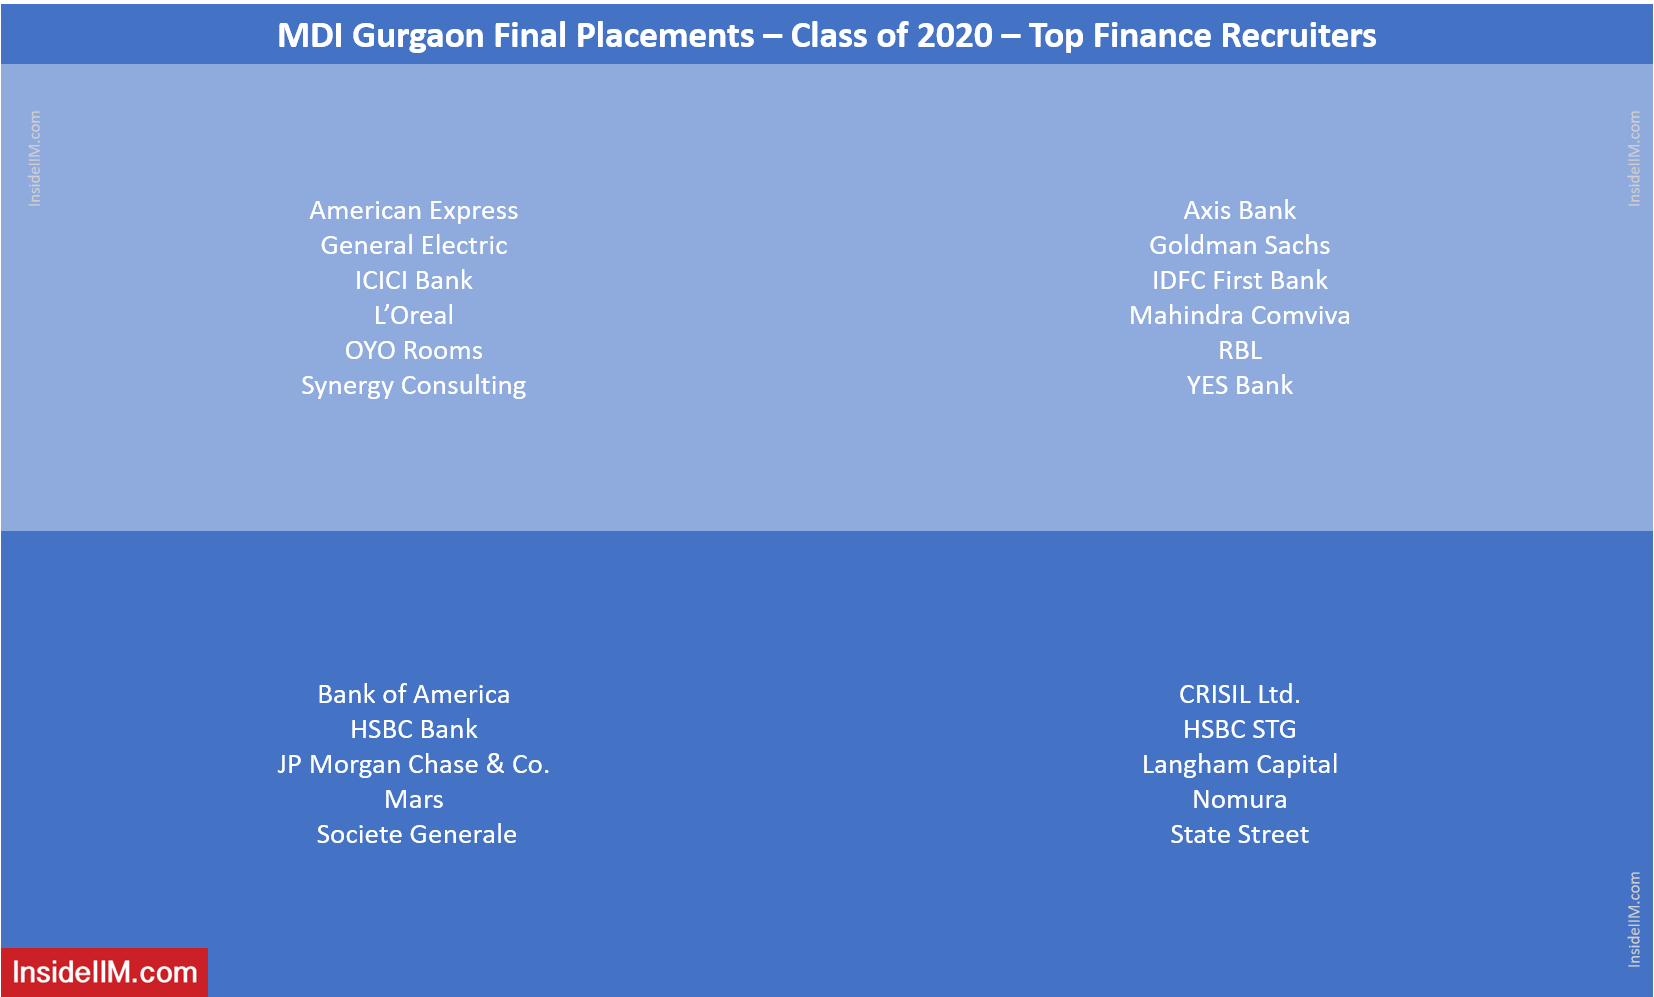 MDI Gurgaon Final Placements 2020 - Top Finance Recruiters